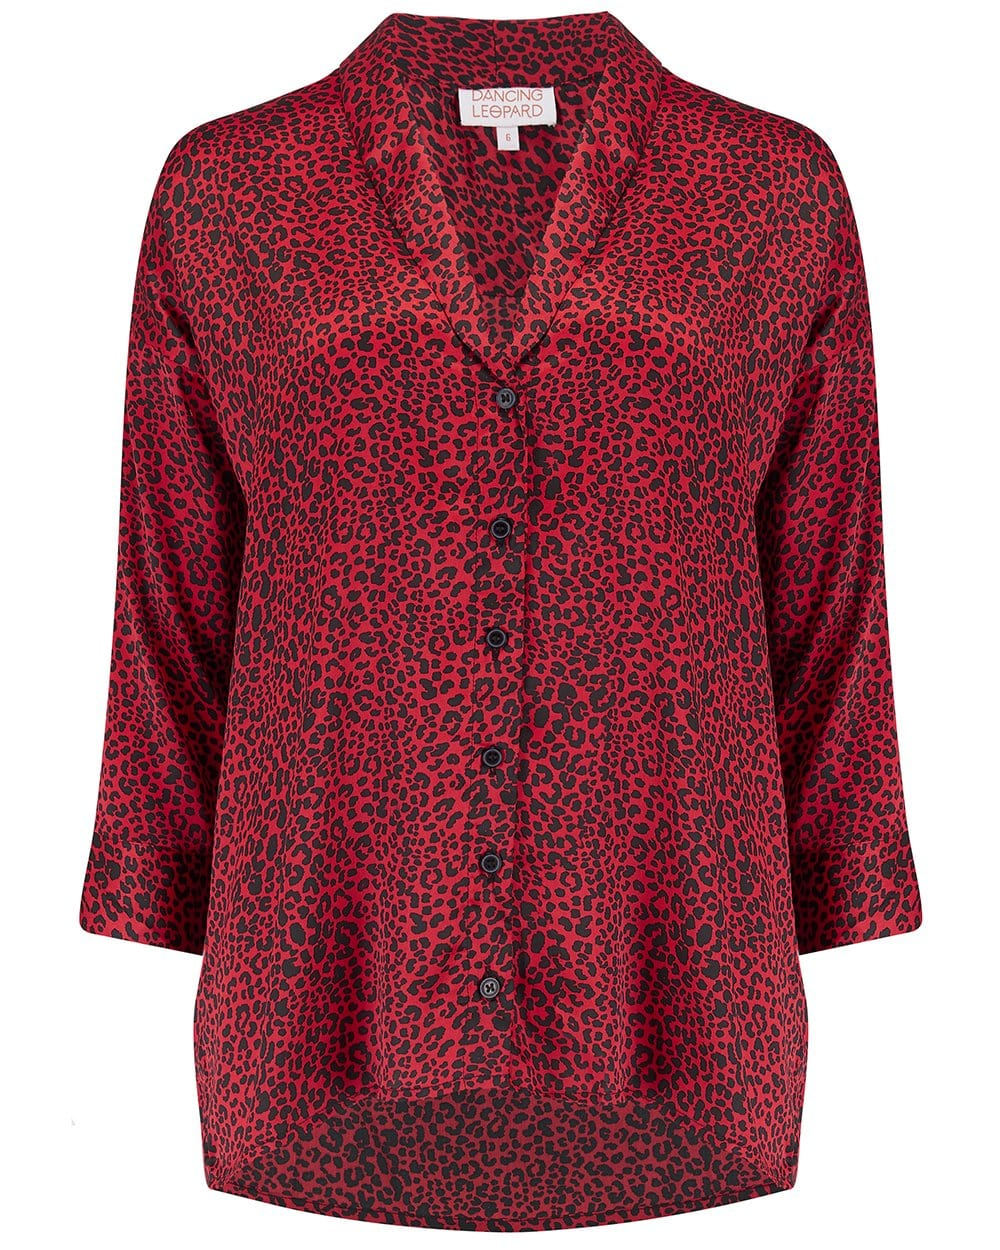 Front view of Dancing Leopard Monte Carlo Shirt in Small Red Leopard Print on white background